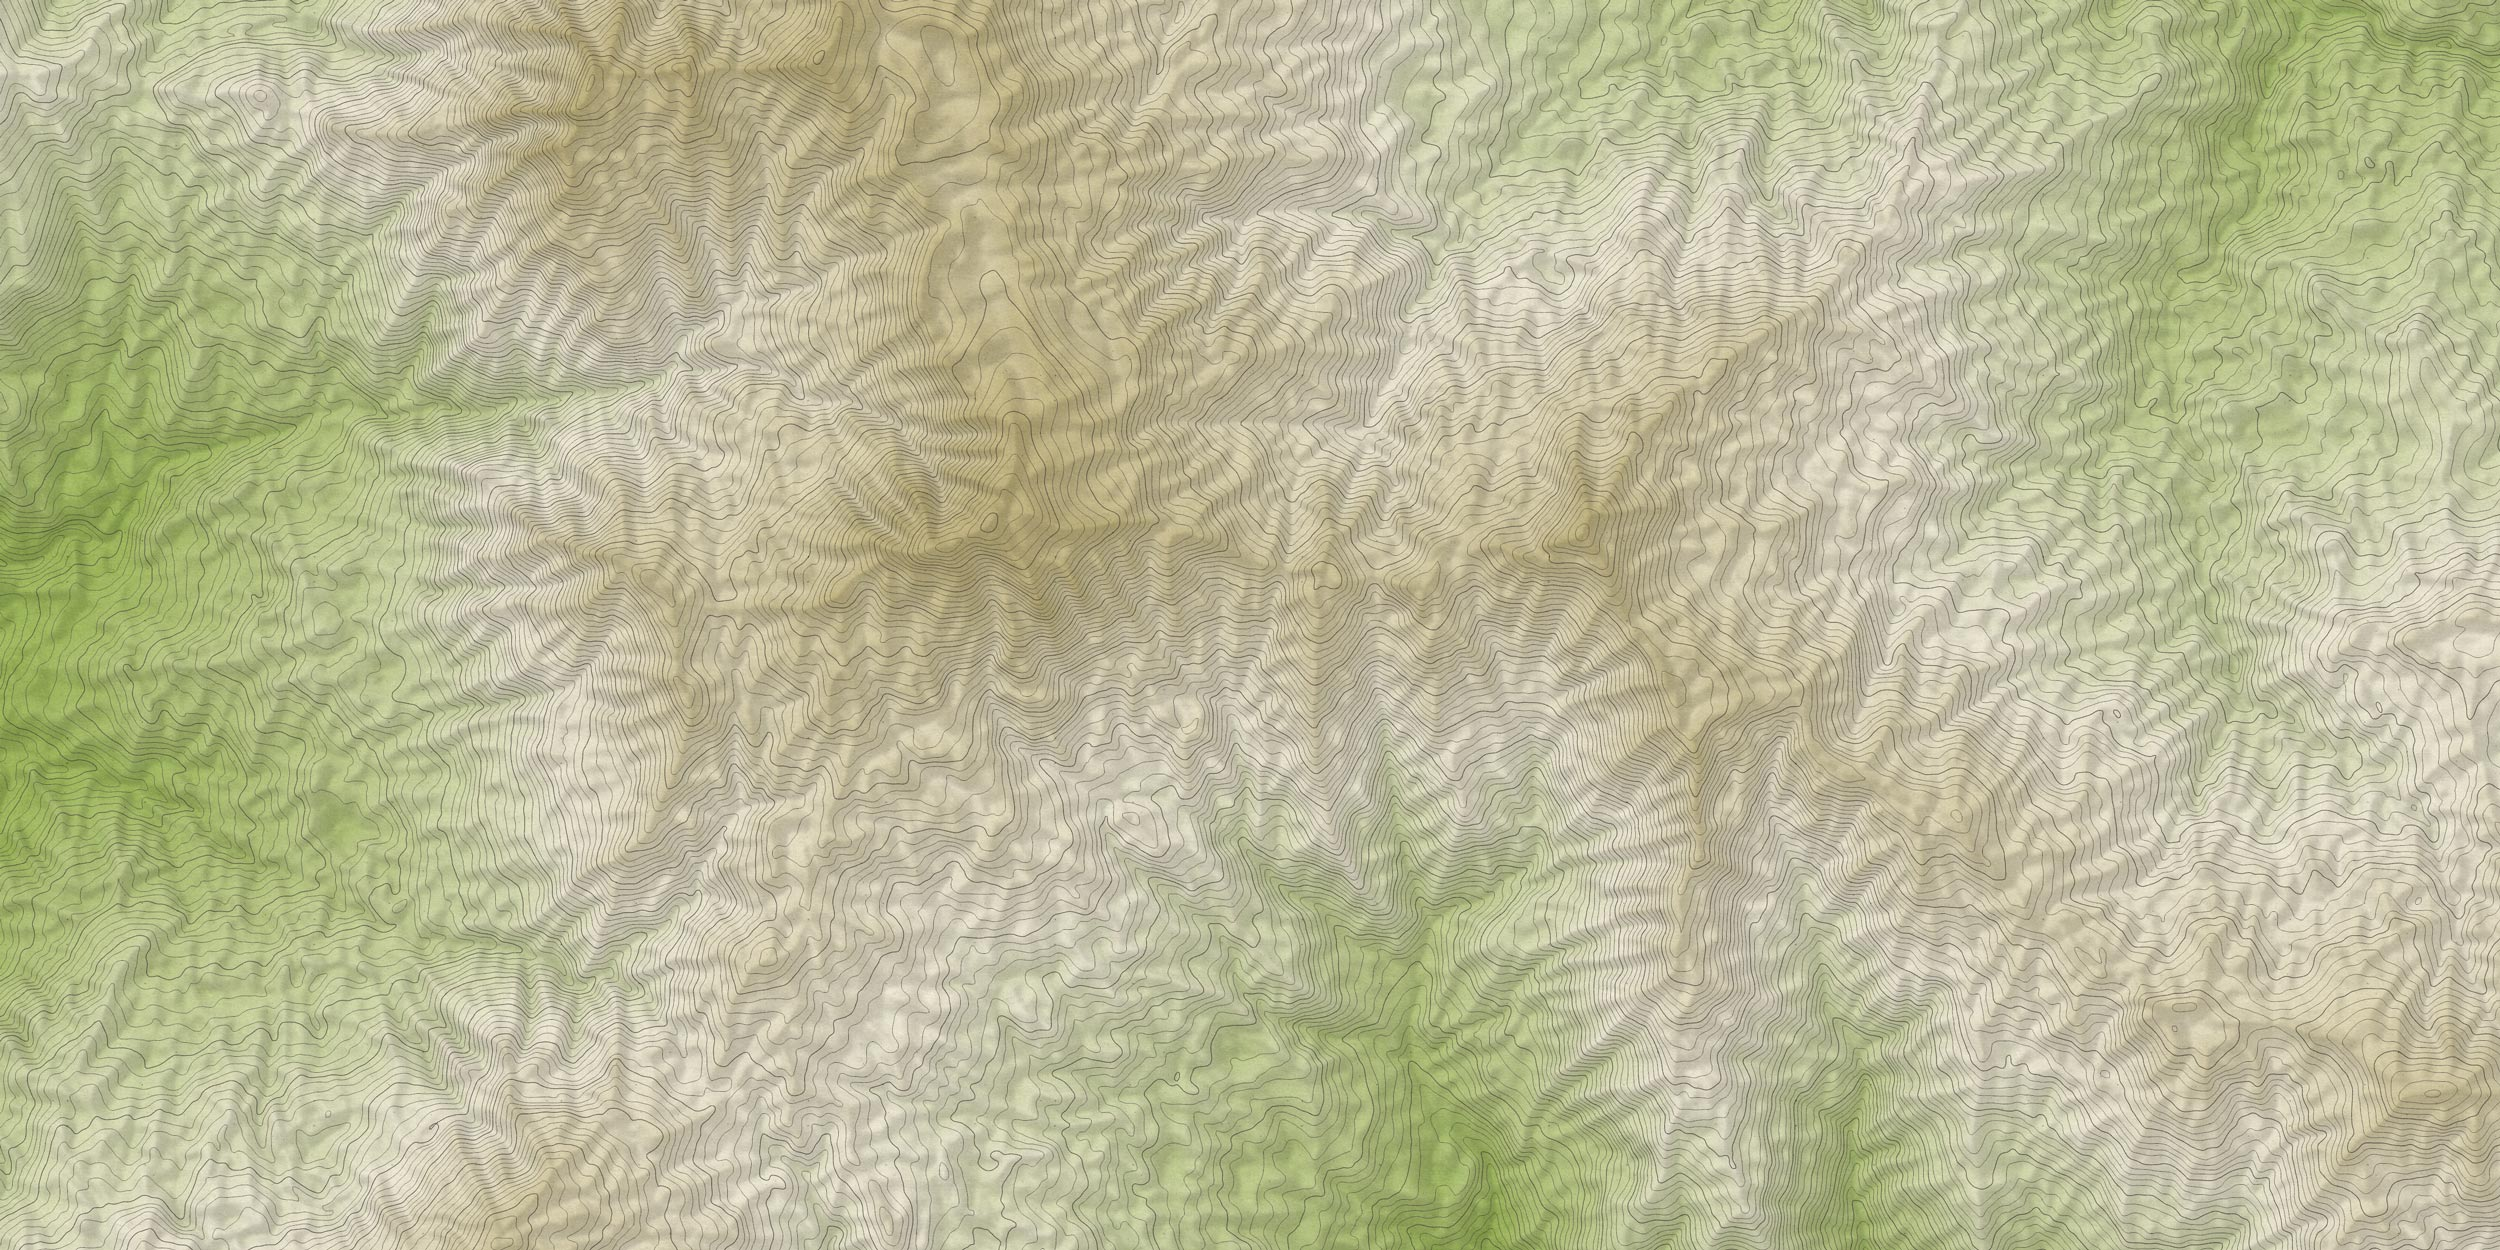 Elatou Trails - Terrain for map at scales above 1:15,000